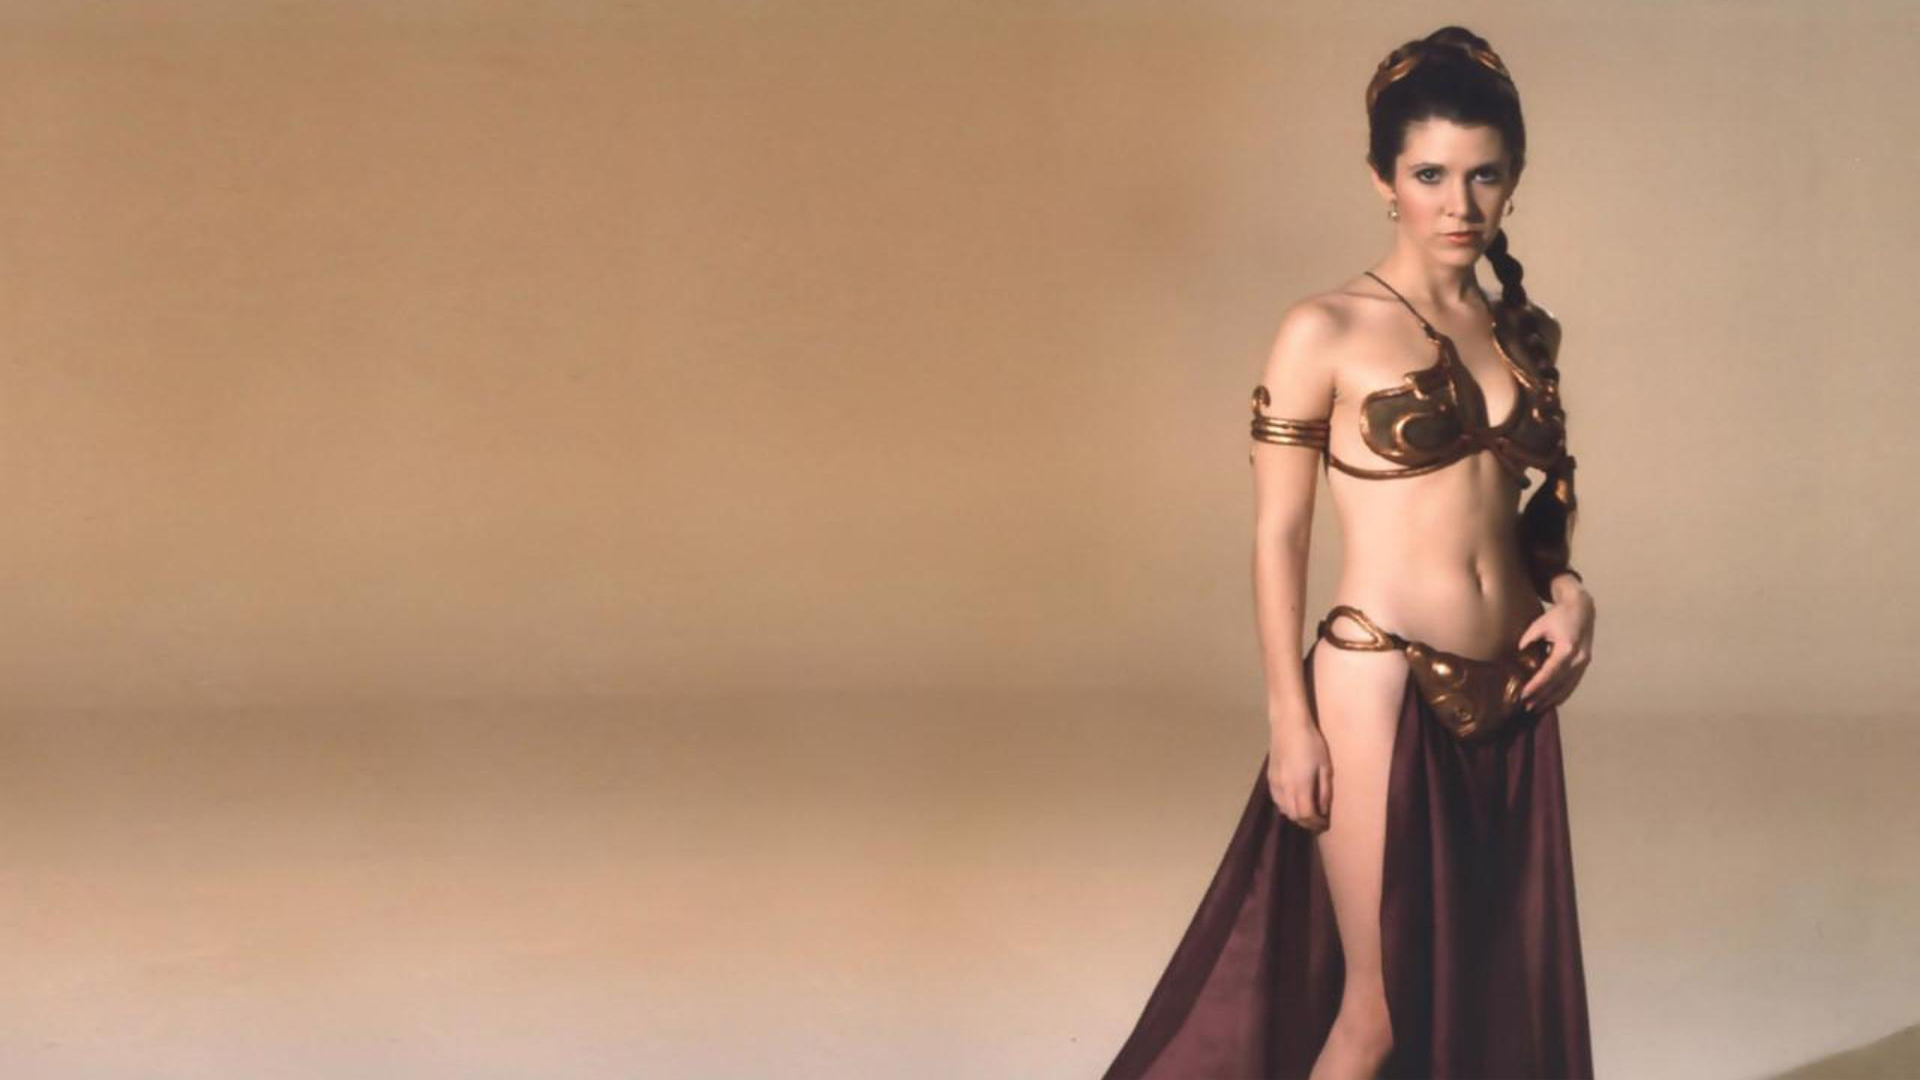 Princess leia sexy wallpapers exploited videos